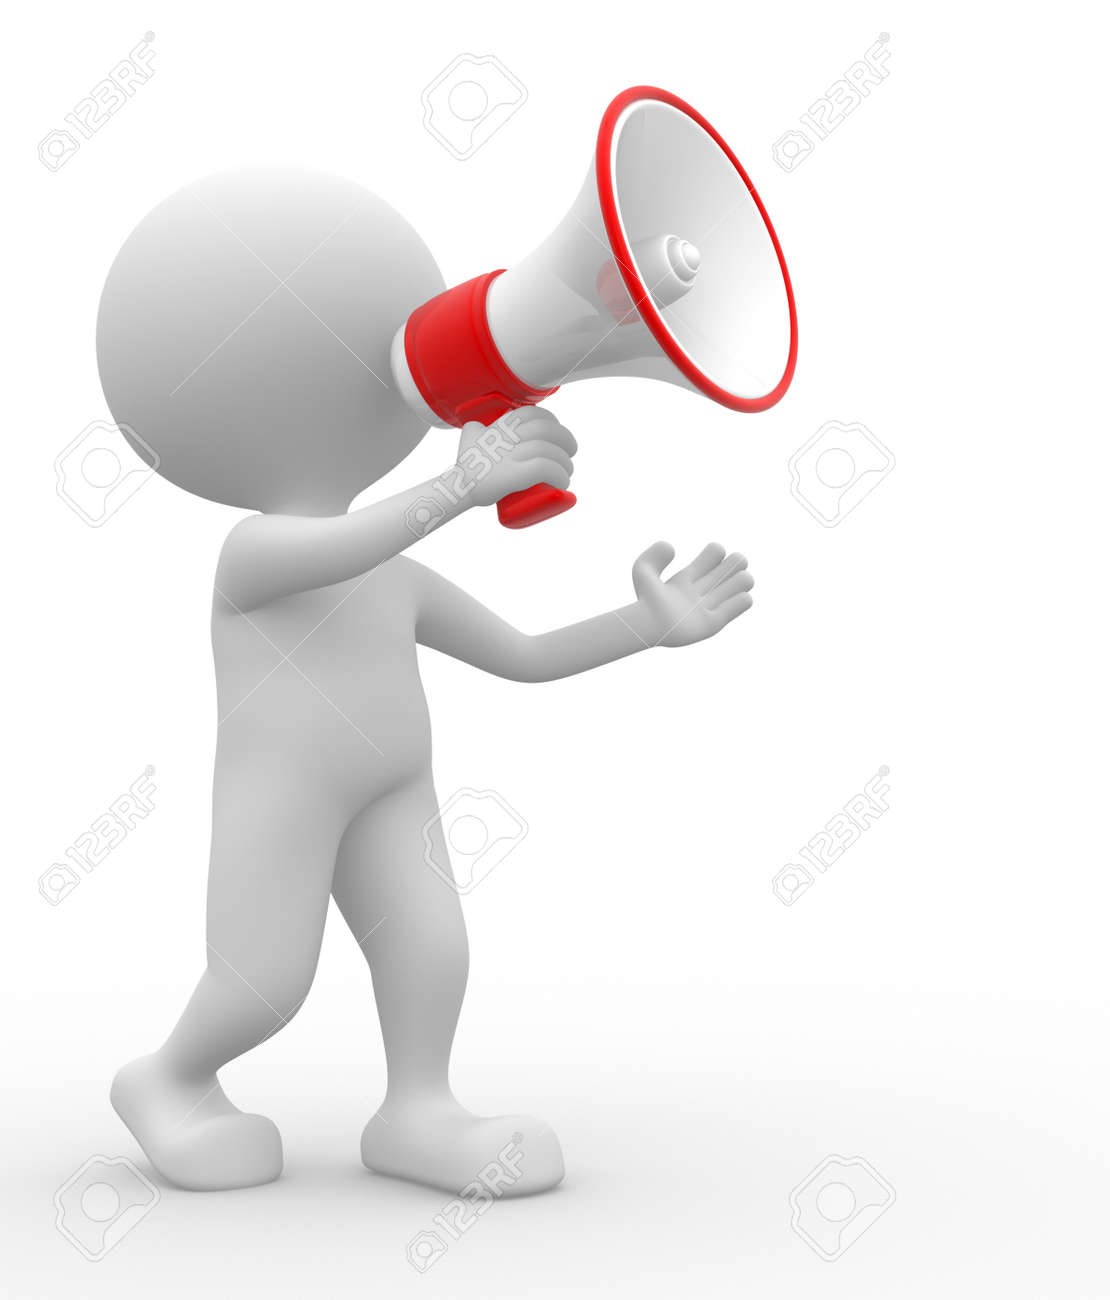 3d people - man, person with a megaphone Stock Photo - 21138609